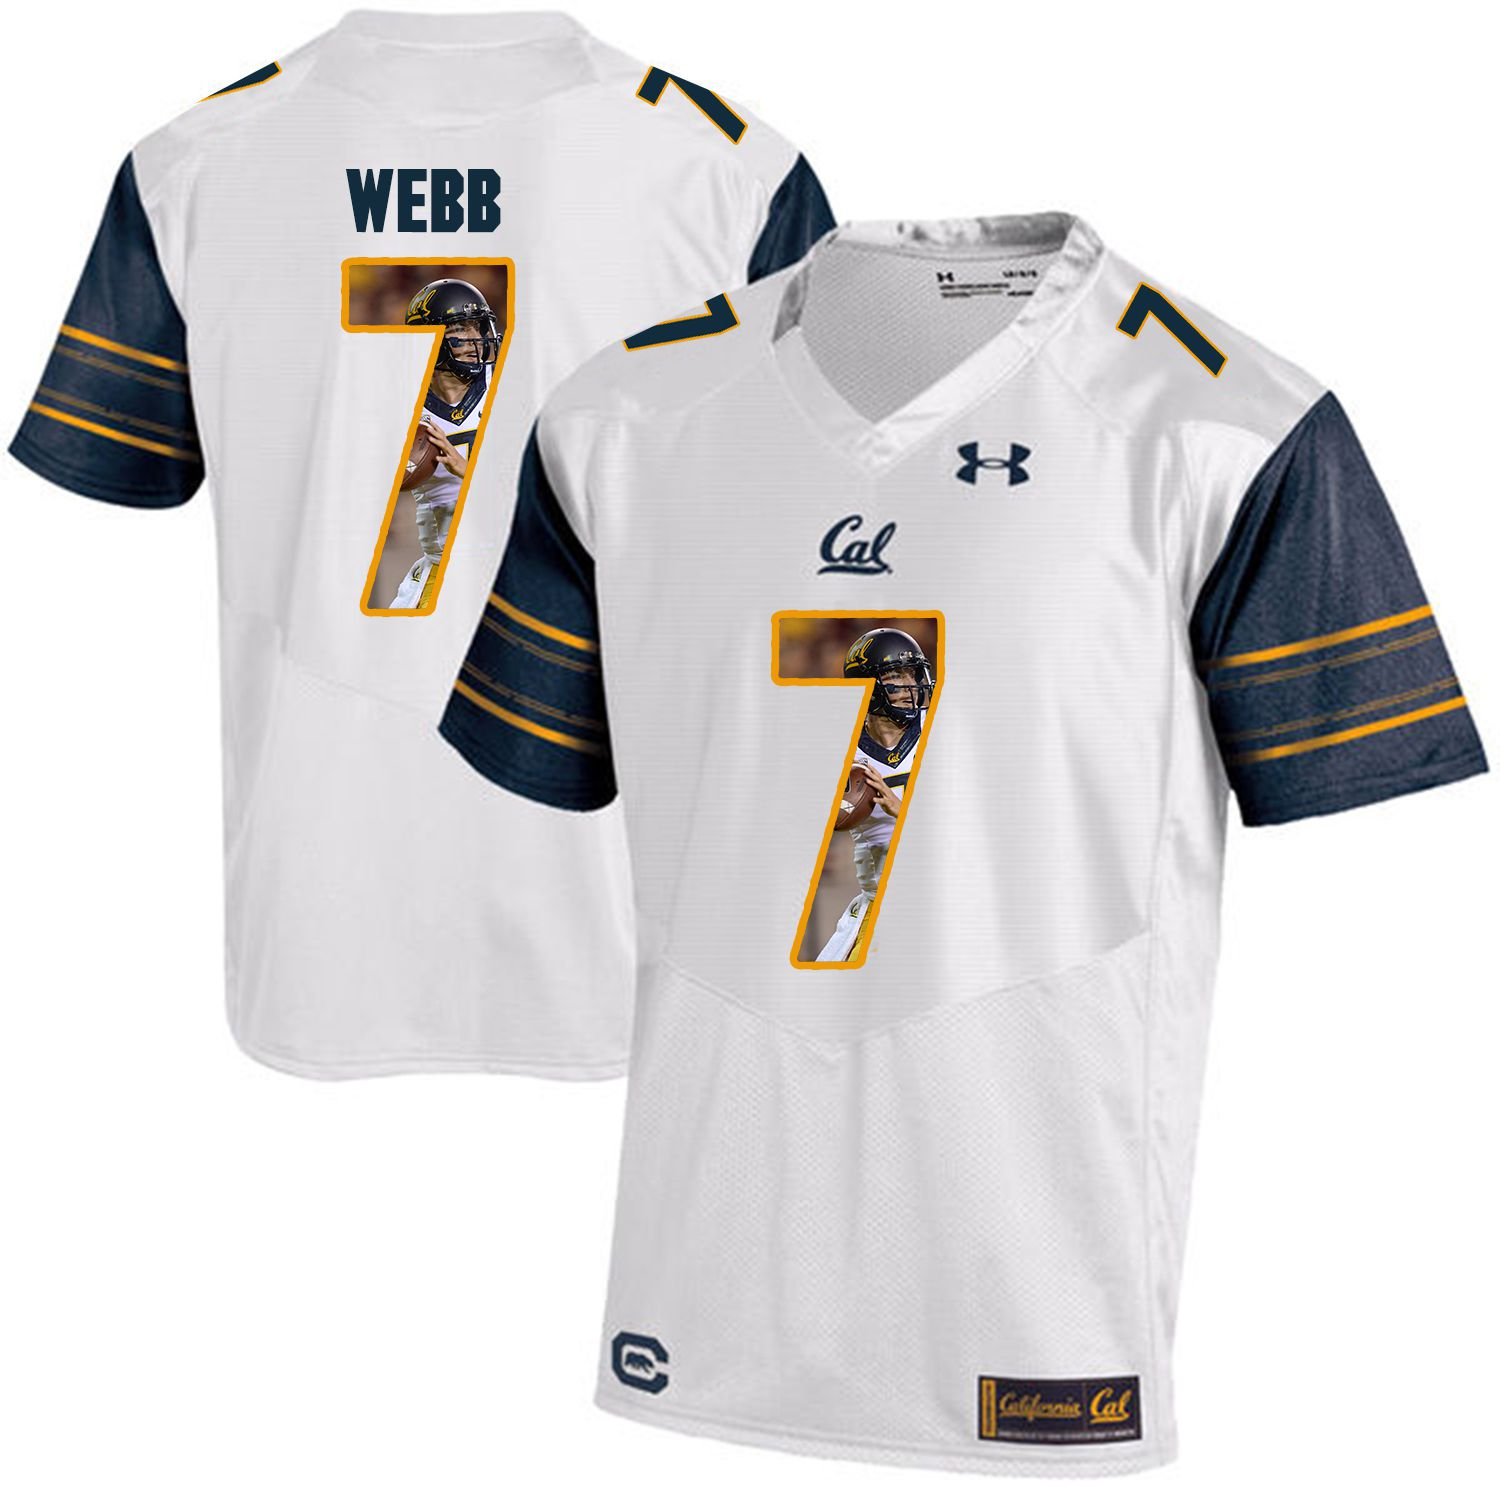 Men California Golden Bears 7 Davis Webb White Customized NCAA Jerseys1